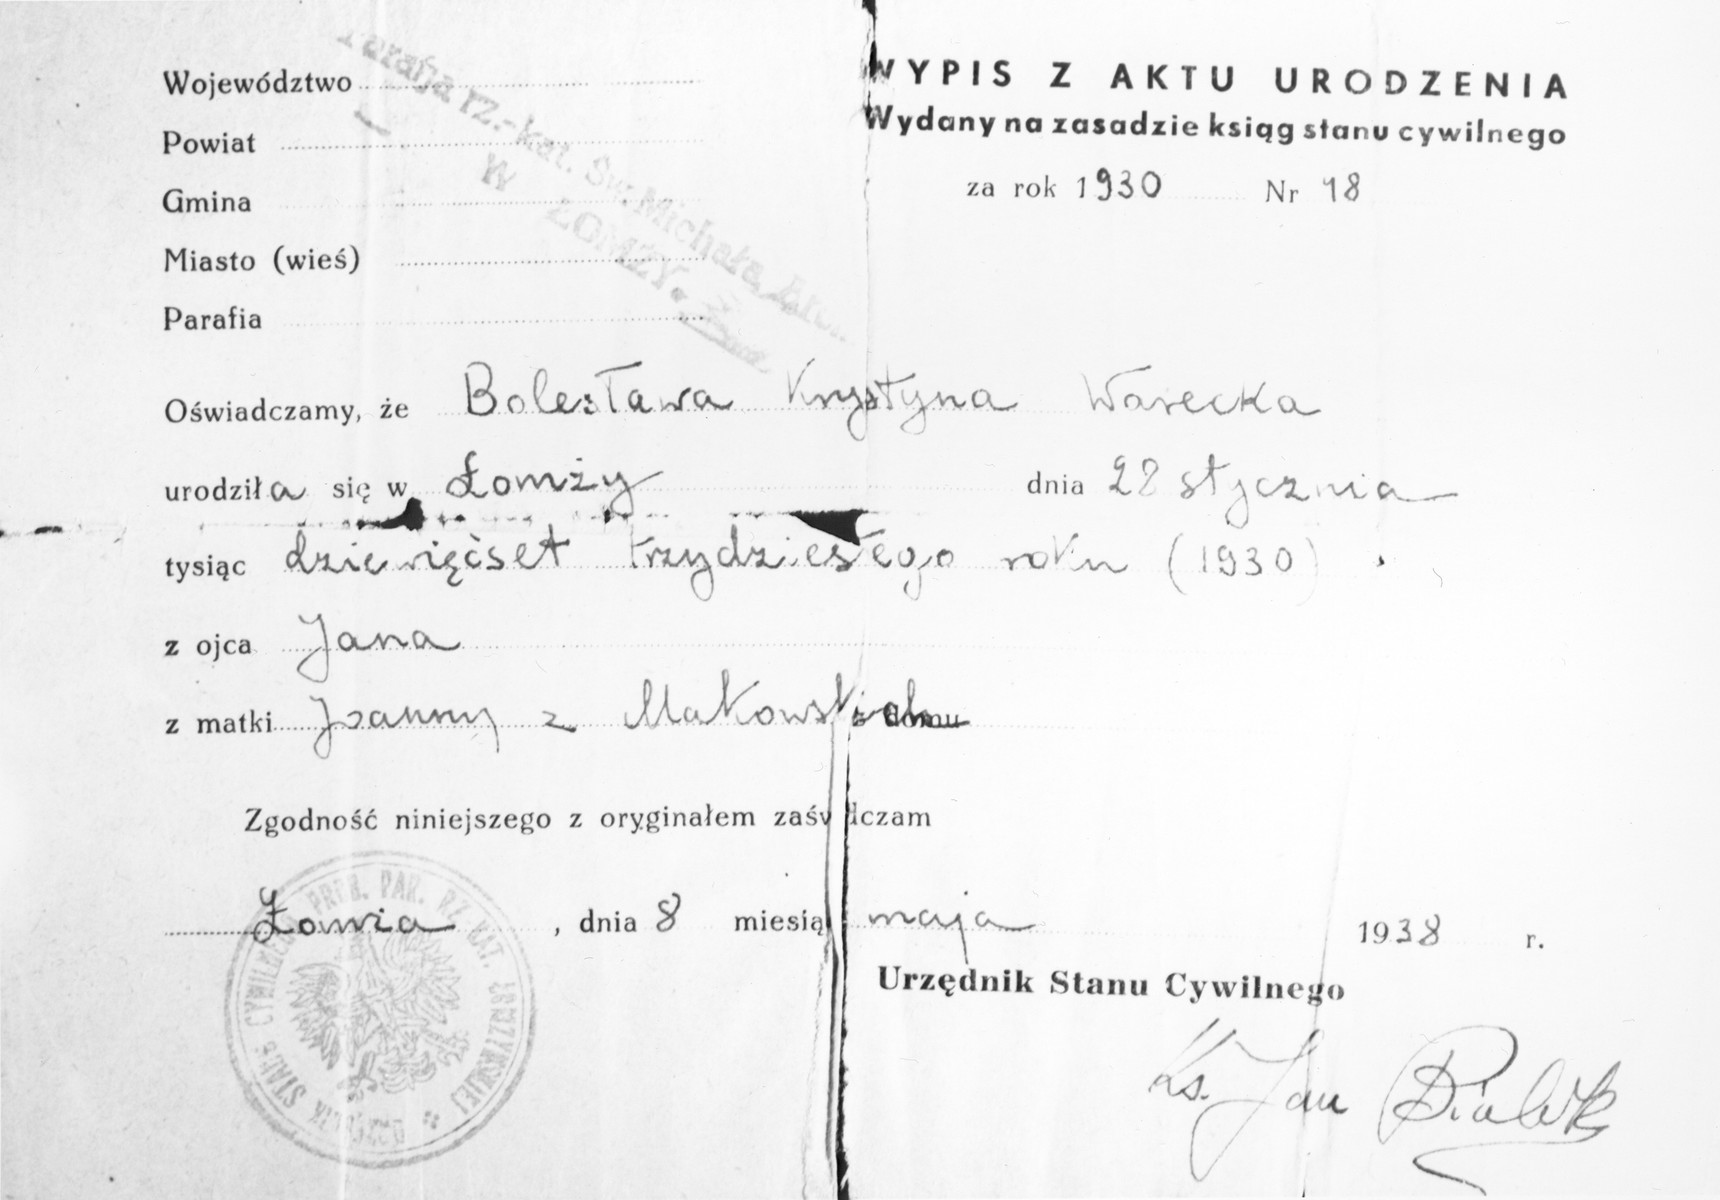 False birth certificate, issued to Bianka Rozenman, the donor, in the name of Boleslawa Krystyna Warecka.